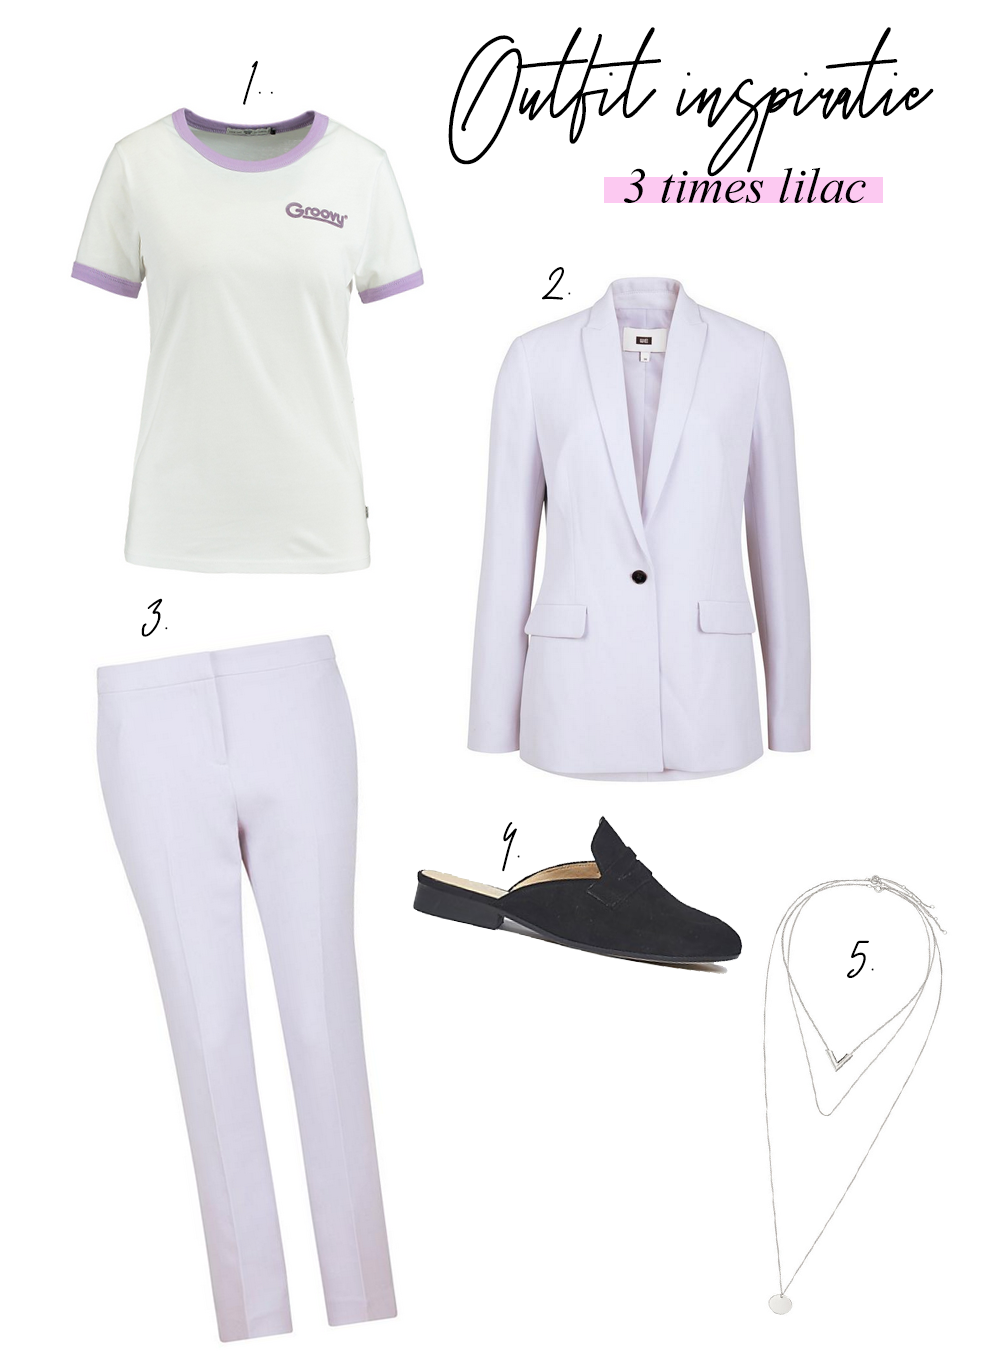 Outfit met Lila items inspiratie